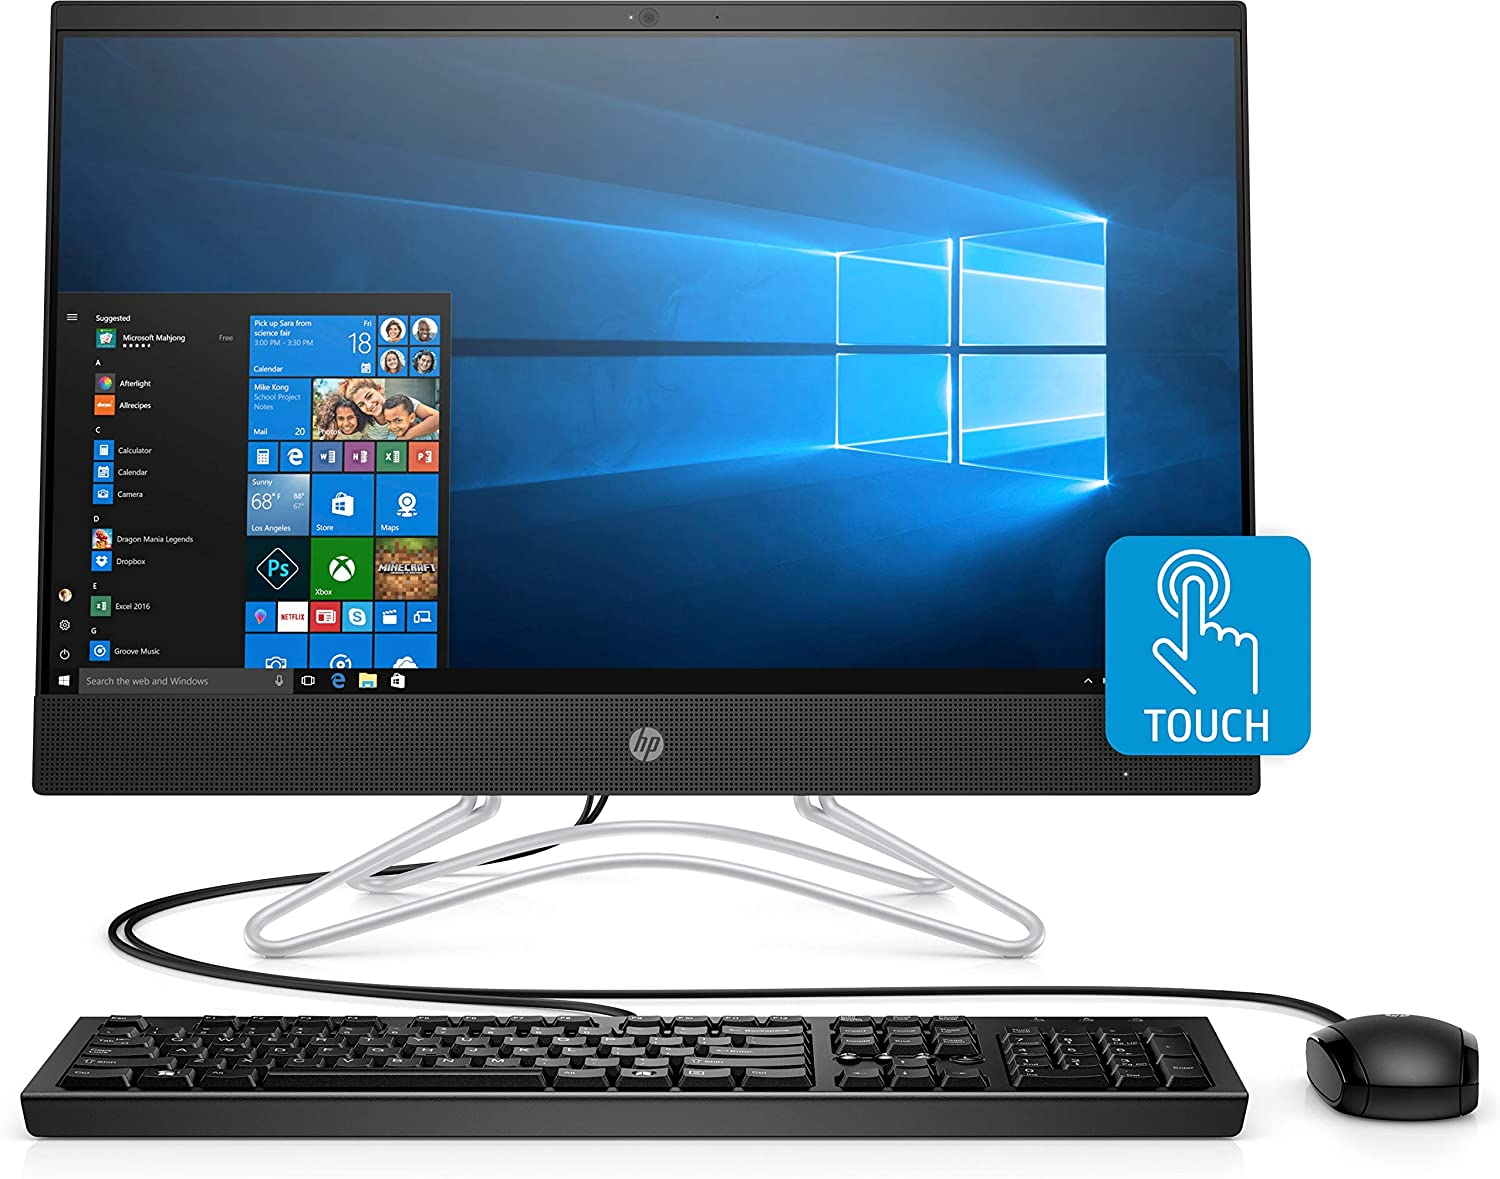 "HP 24-f0037c All In One Touchscreen Full HD 23.8"" Desktop, Intel i5-8400T, 8GB Memory, 1TB HDD, Integrated Speakers, Optical Drive, Keyboard and Mouse, Windows 10 Home"